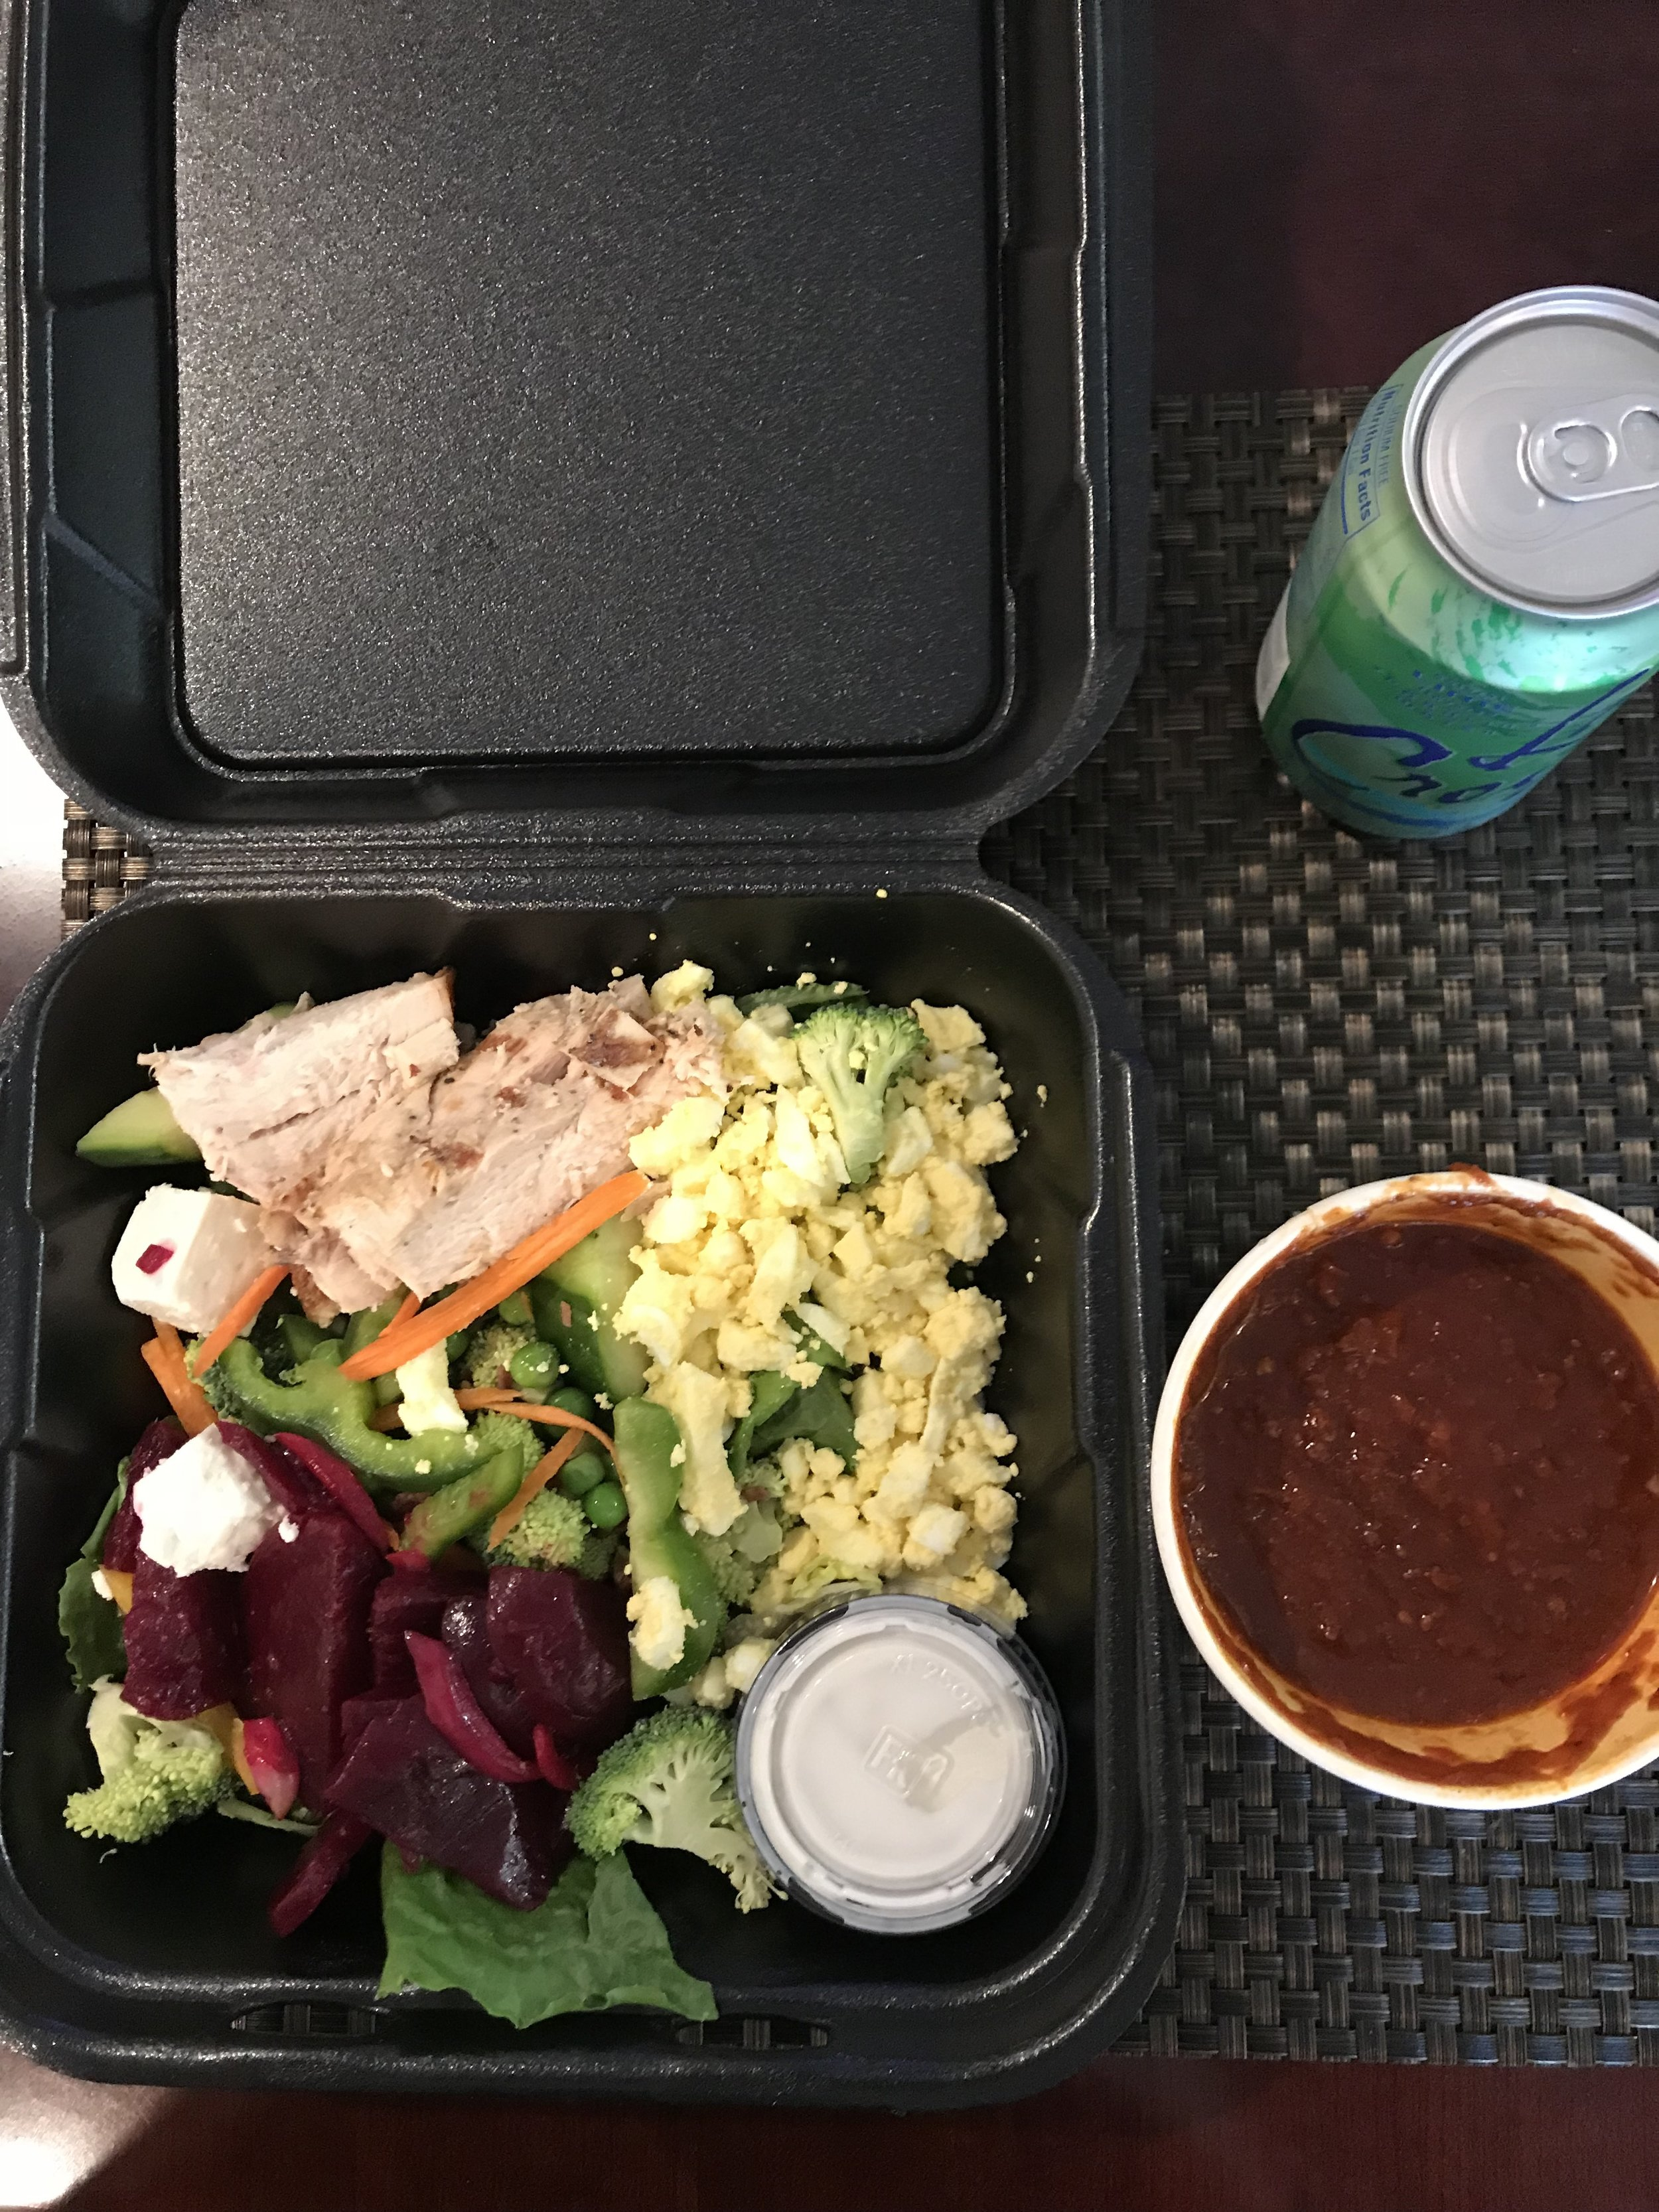 LUNCH - Salad of Romain Lettuce, Beets, Bell Peppers, Peas, Broccoli, Feta Cheese, Chicken, Hard Boiled Egg, Blue Cheese Dressing, and Chile with Beans.